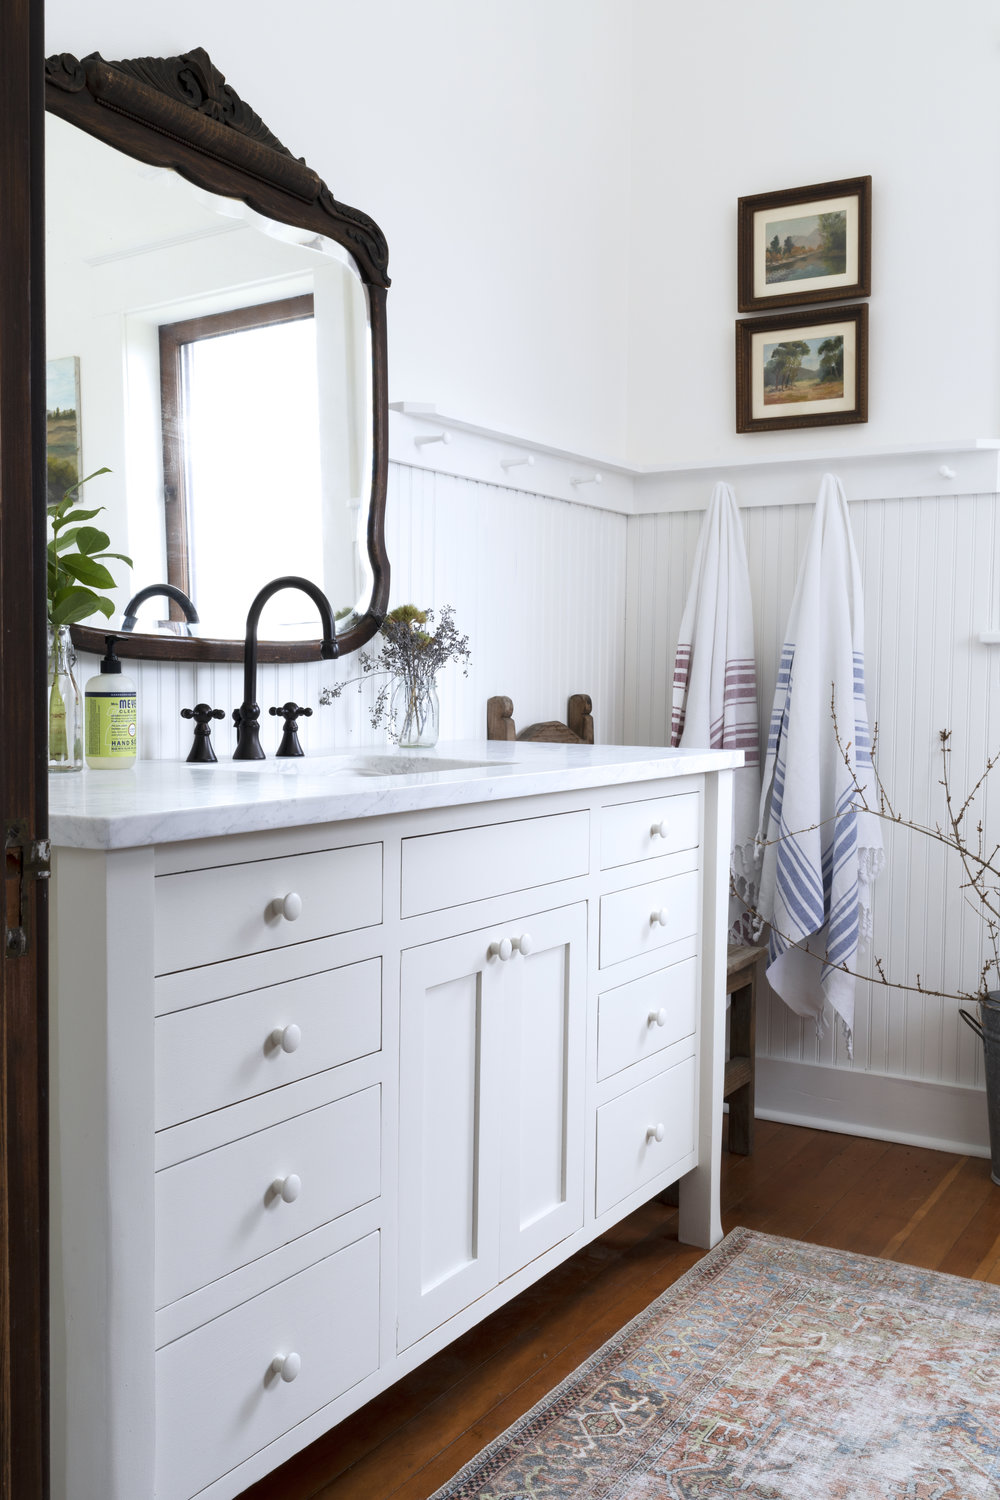 The Grit and Polish - Farmhouse Bathroom Budget Refresh Vanity AFTER.jpg